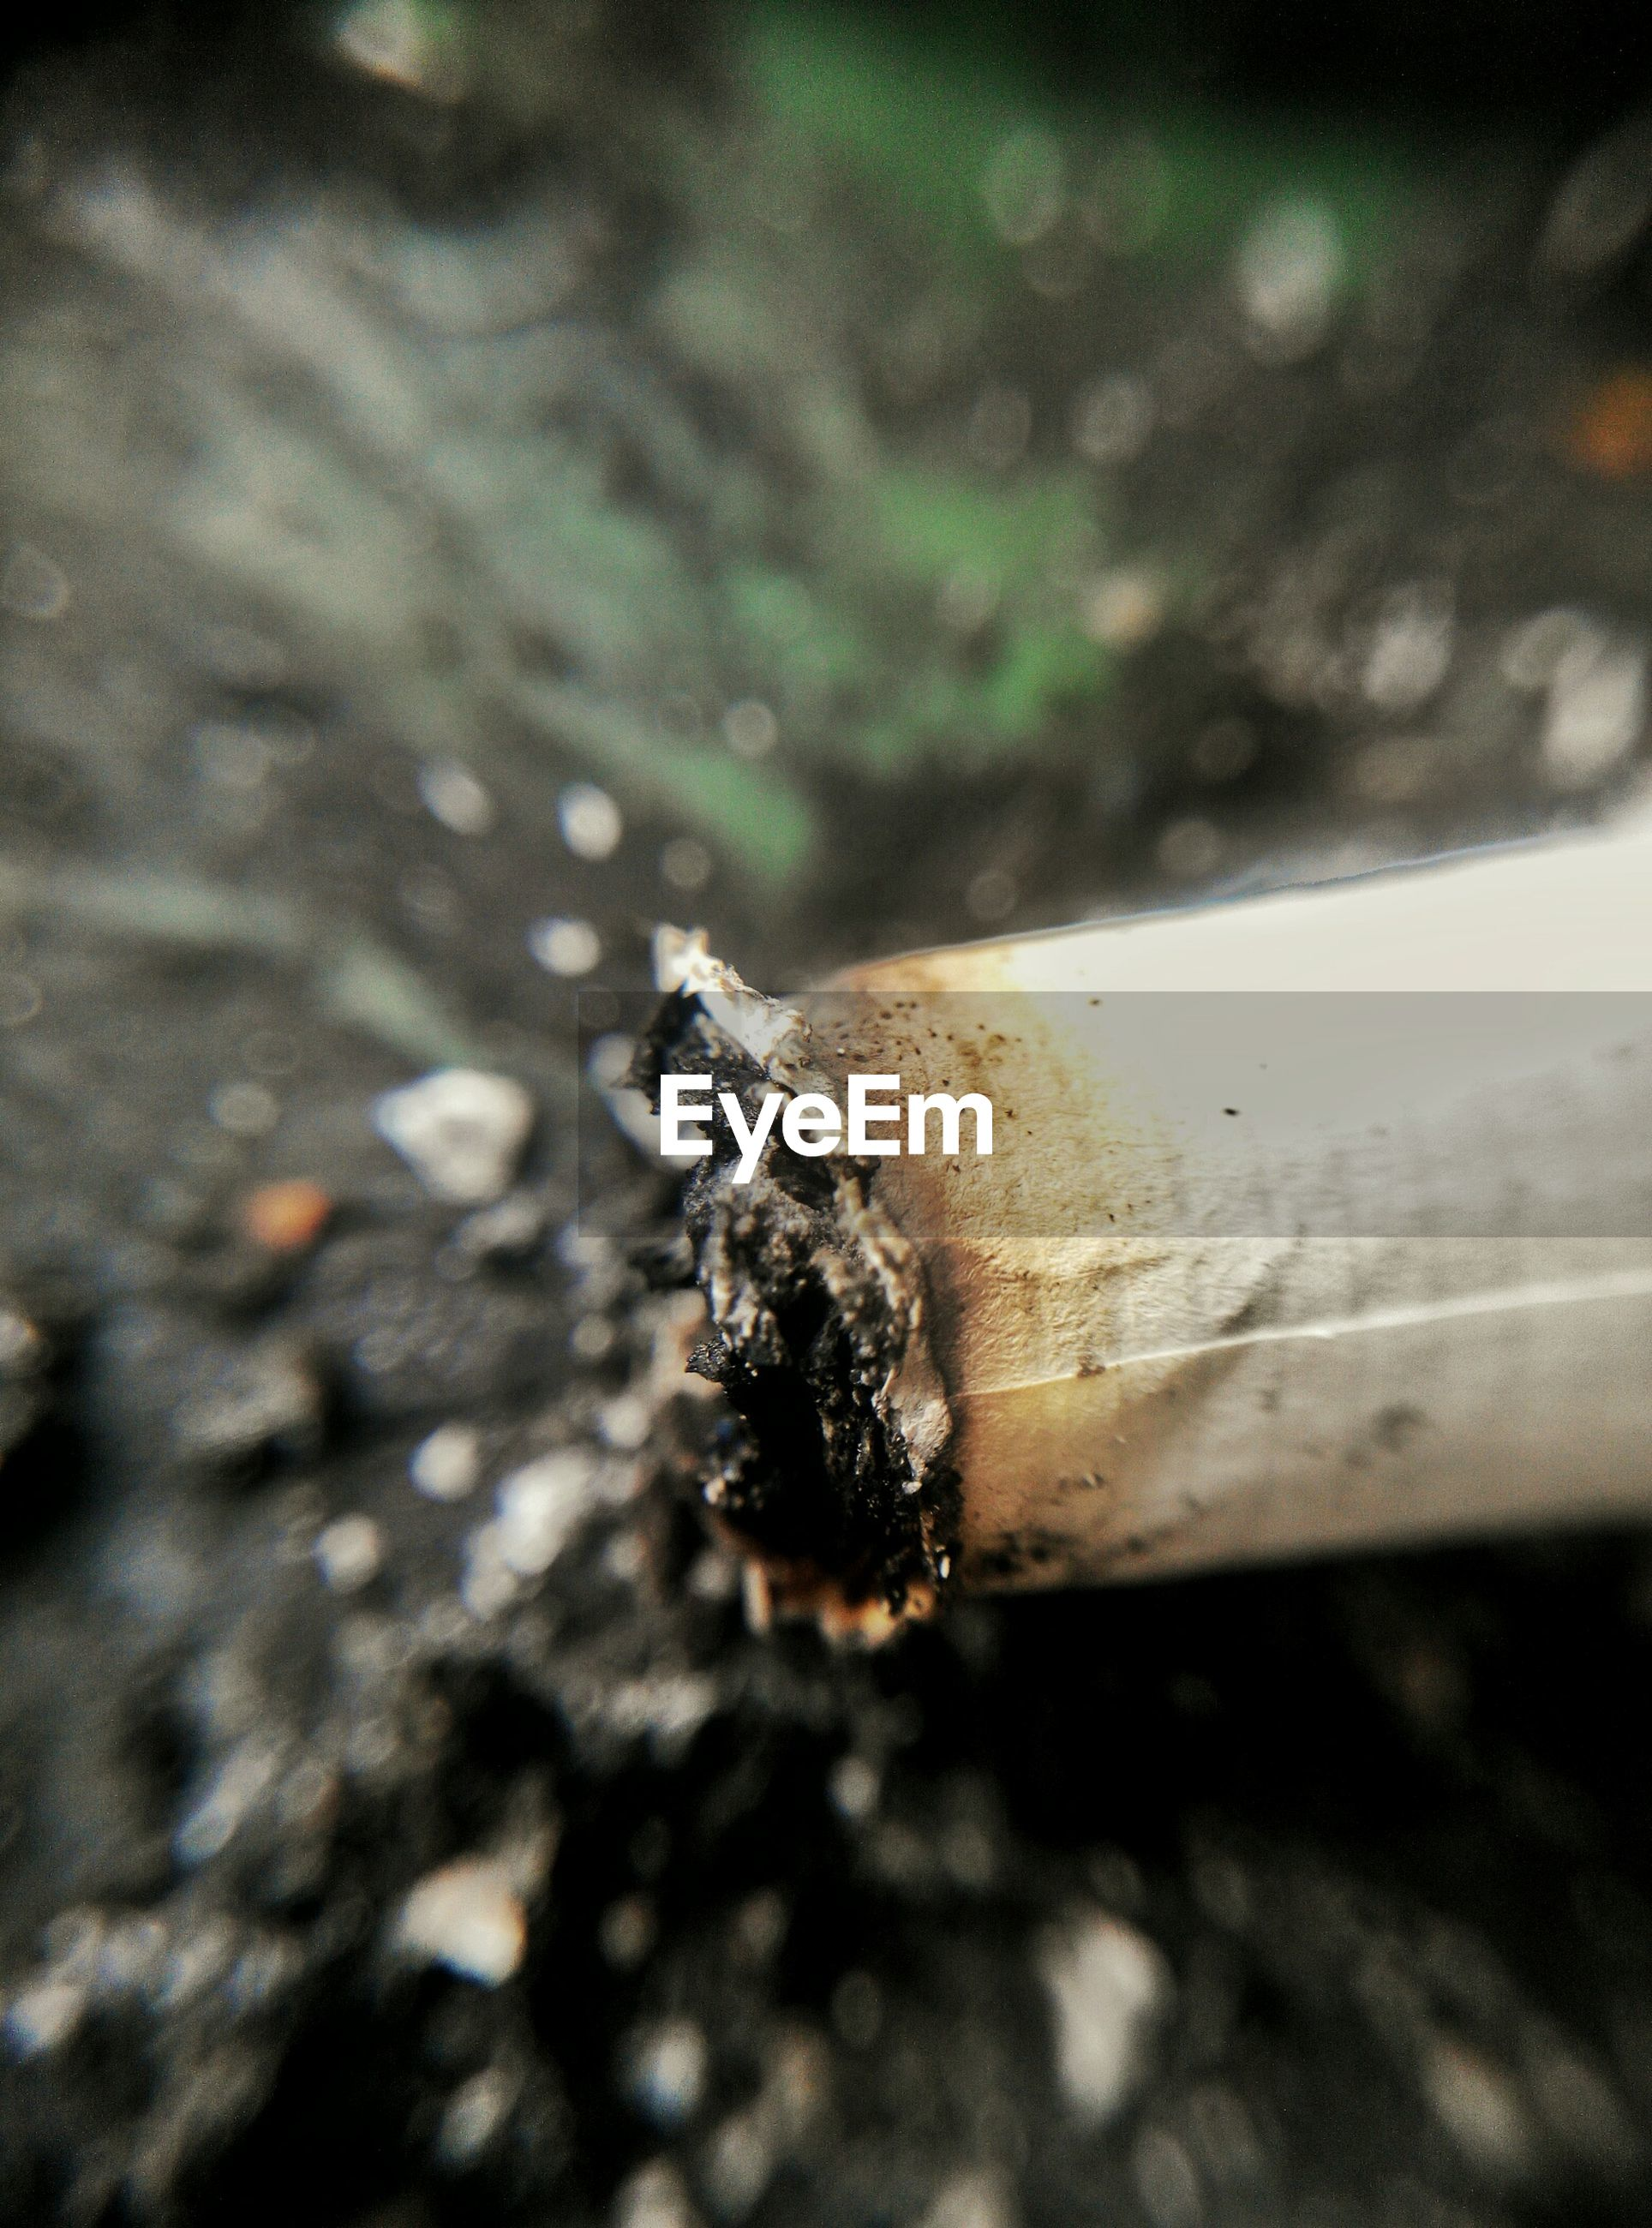 Close-up view of cigarette